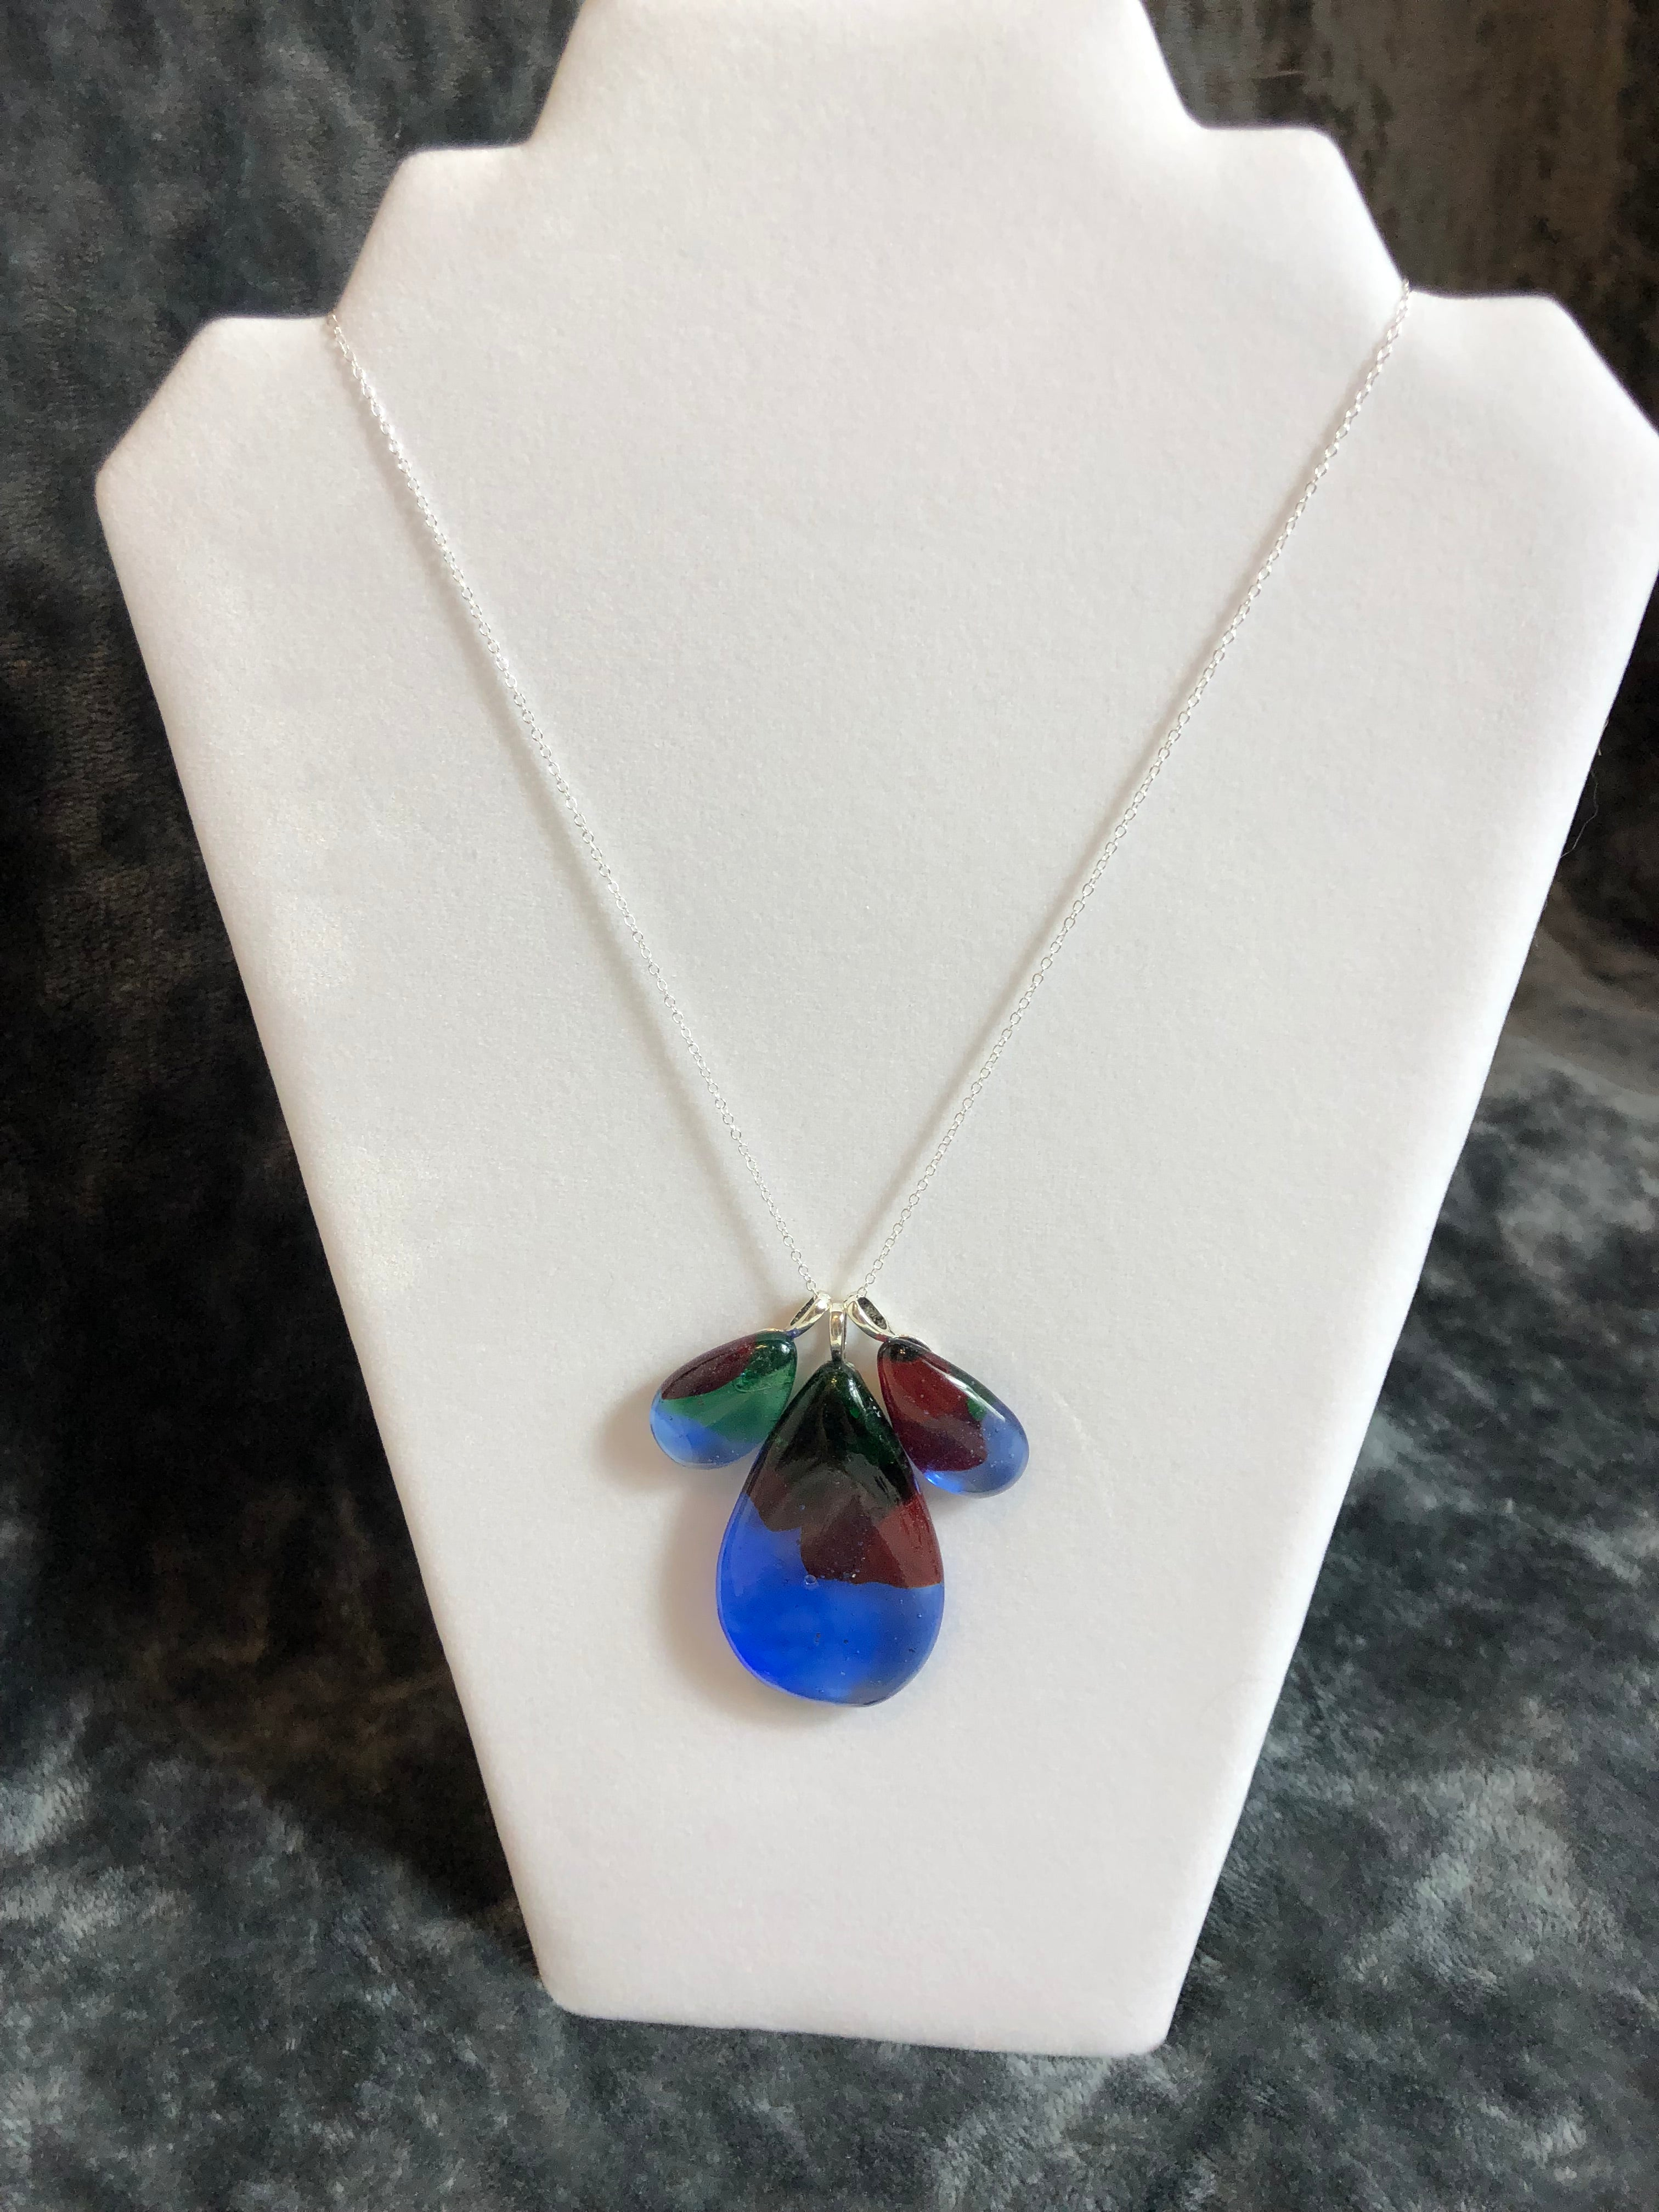 Convertable necklace set - Kubatko Glass - Artistically Recycled Glass